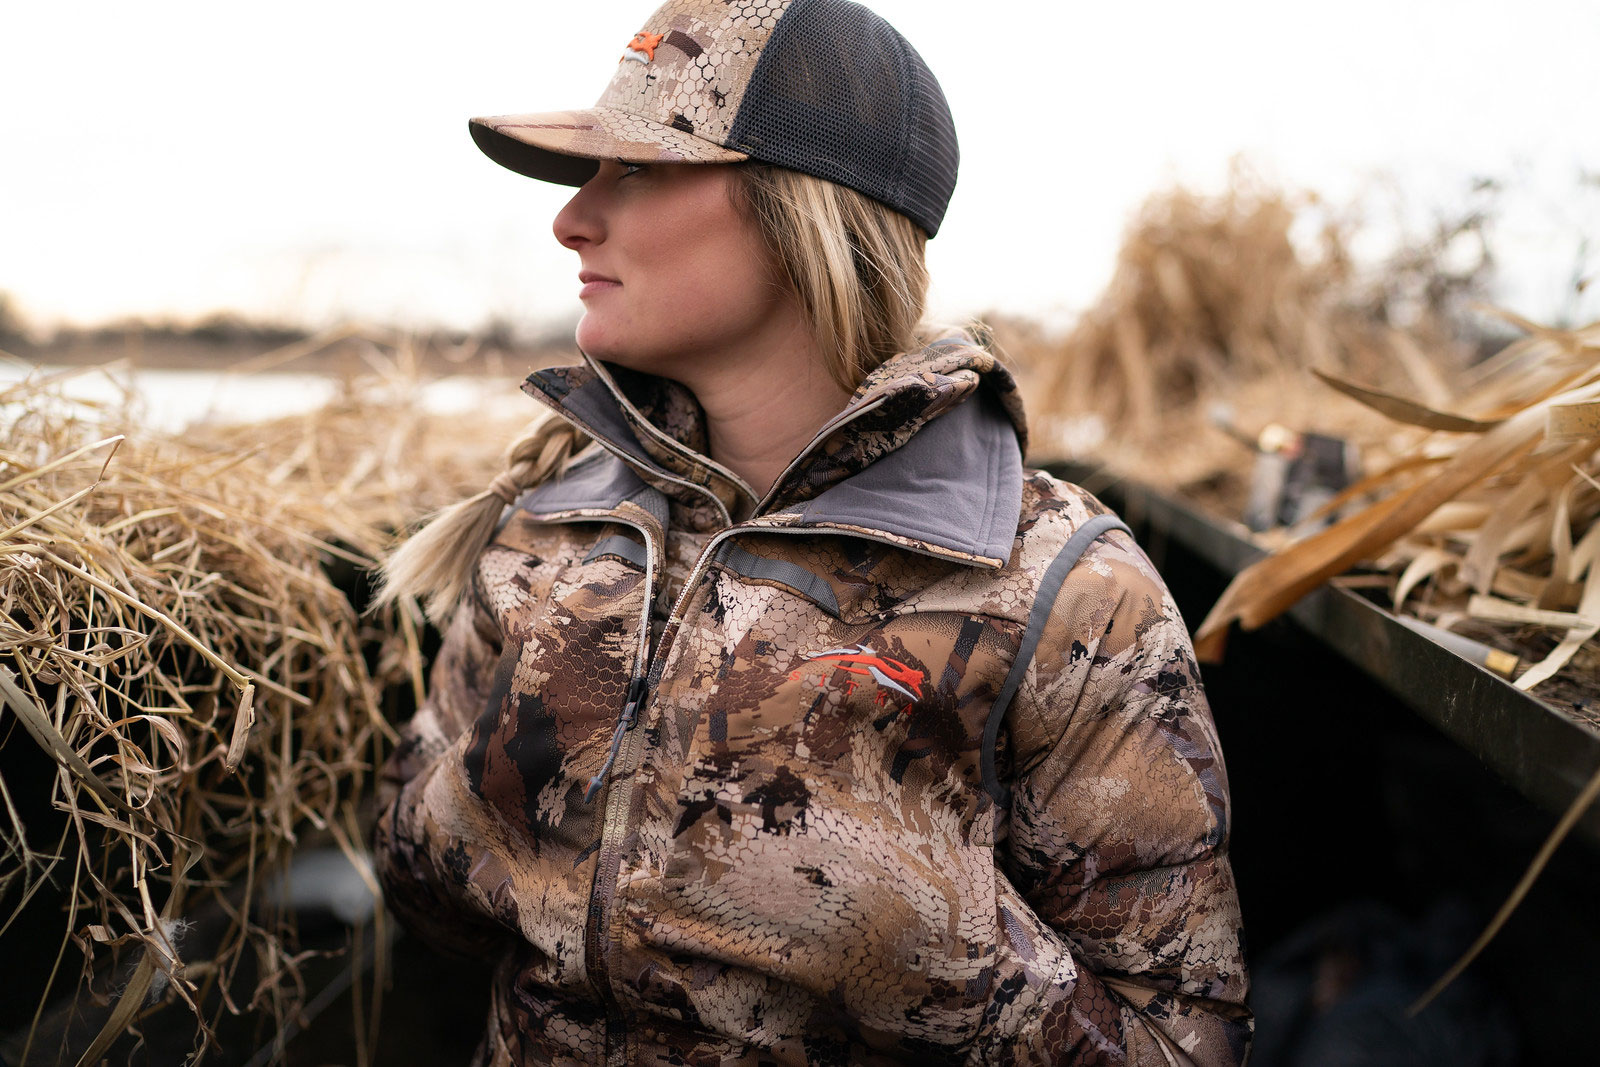 Chromosome Female This New Sitka Women's Waterfowl Gear Couldn't Have Come